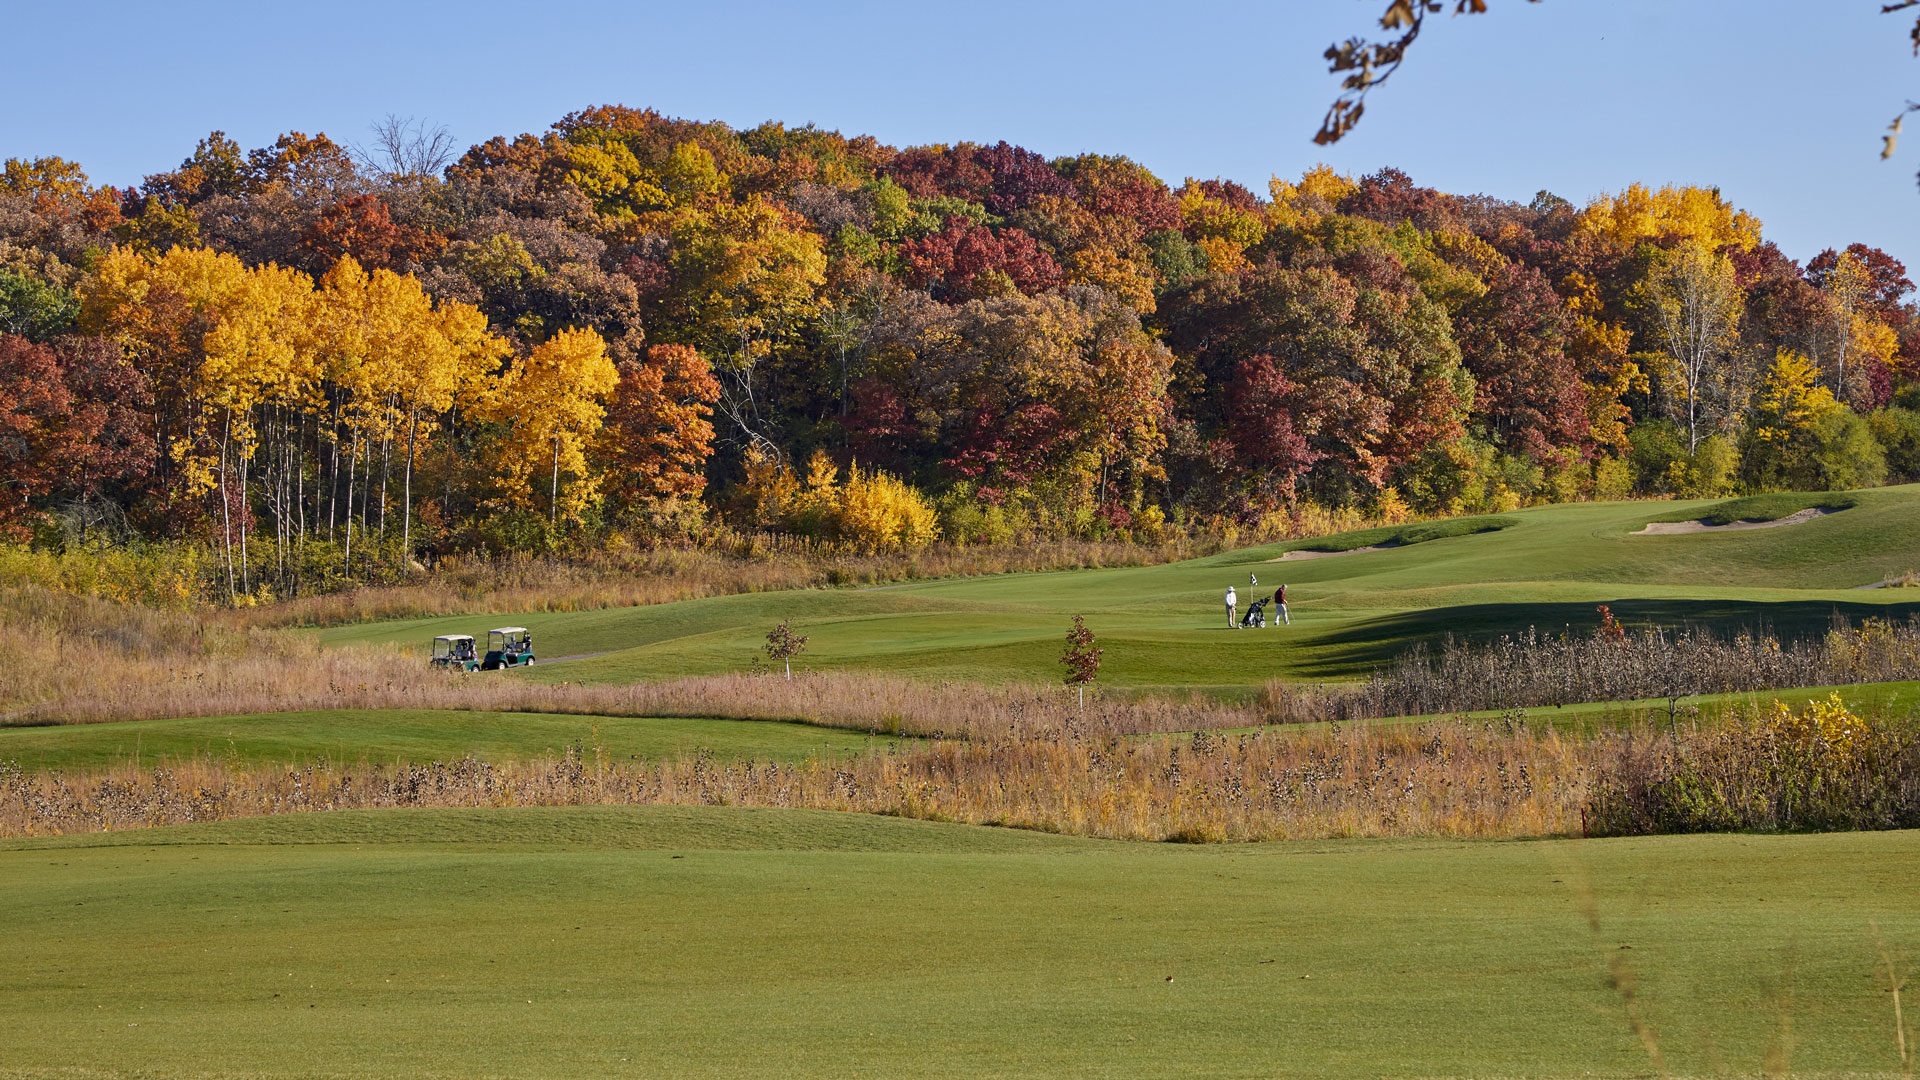 Best-Golf-Courses-in-Minnesota-2020